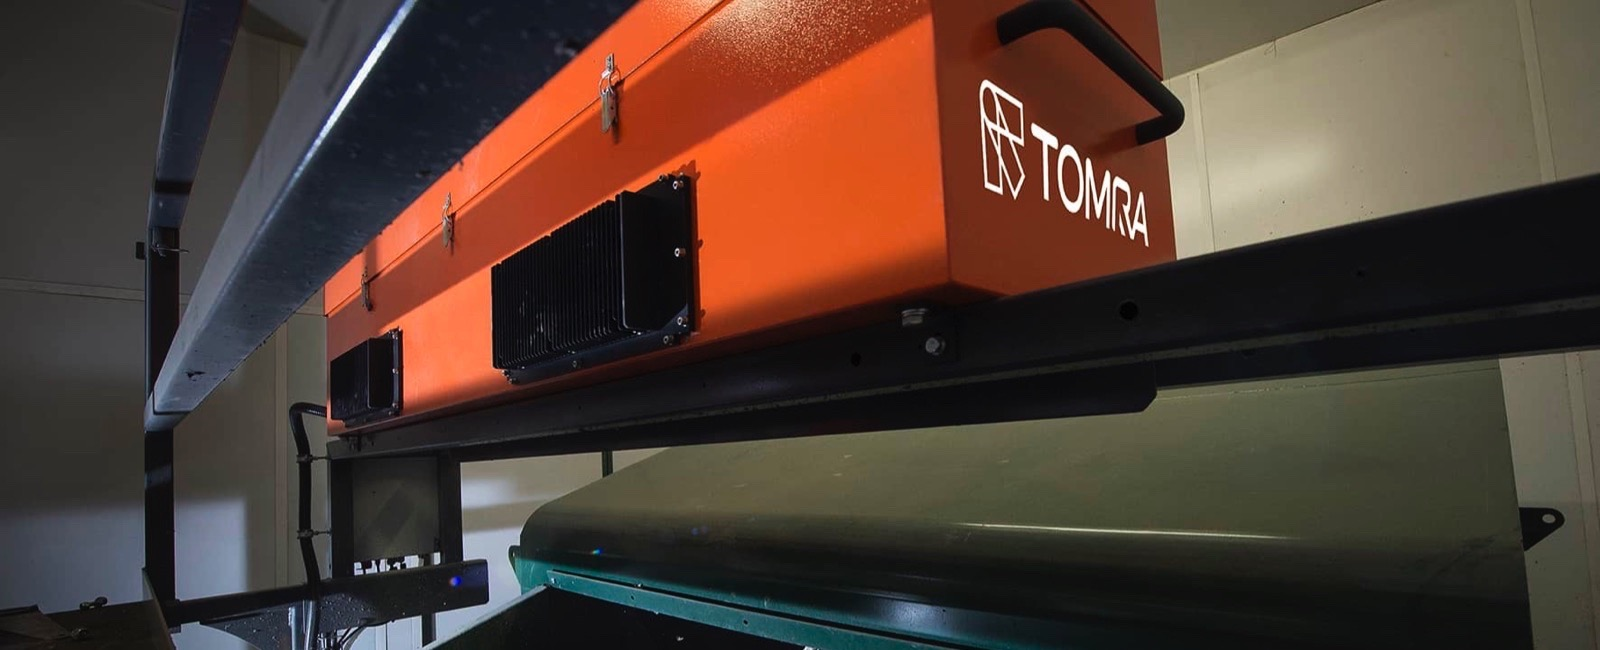 TOMRA wins large-scale Automated Sorting Contract by SKM Recycling